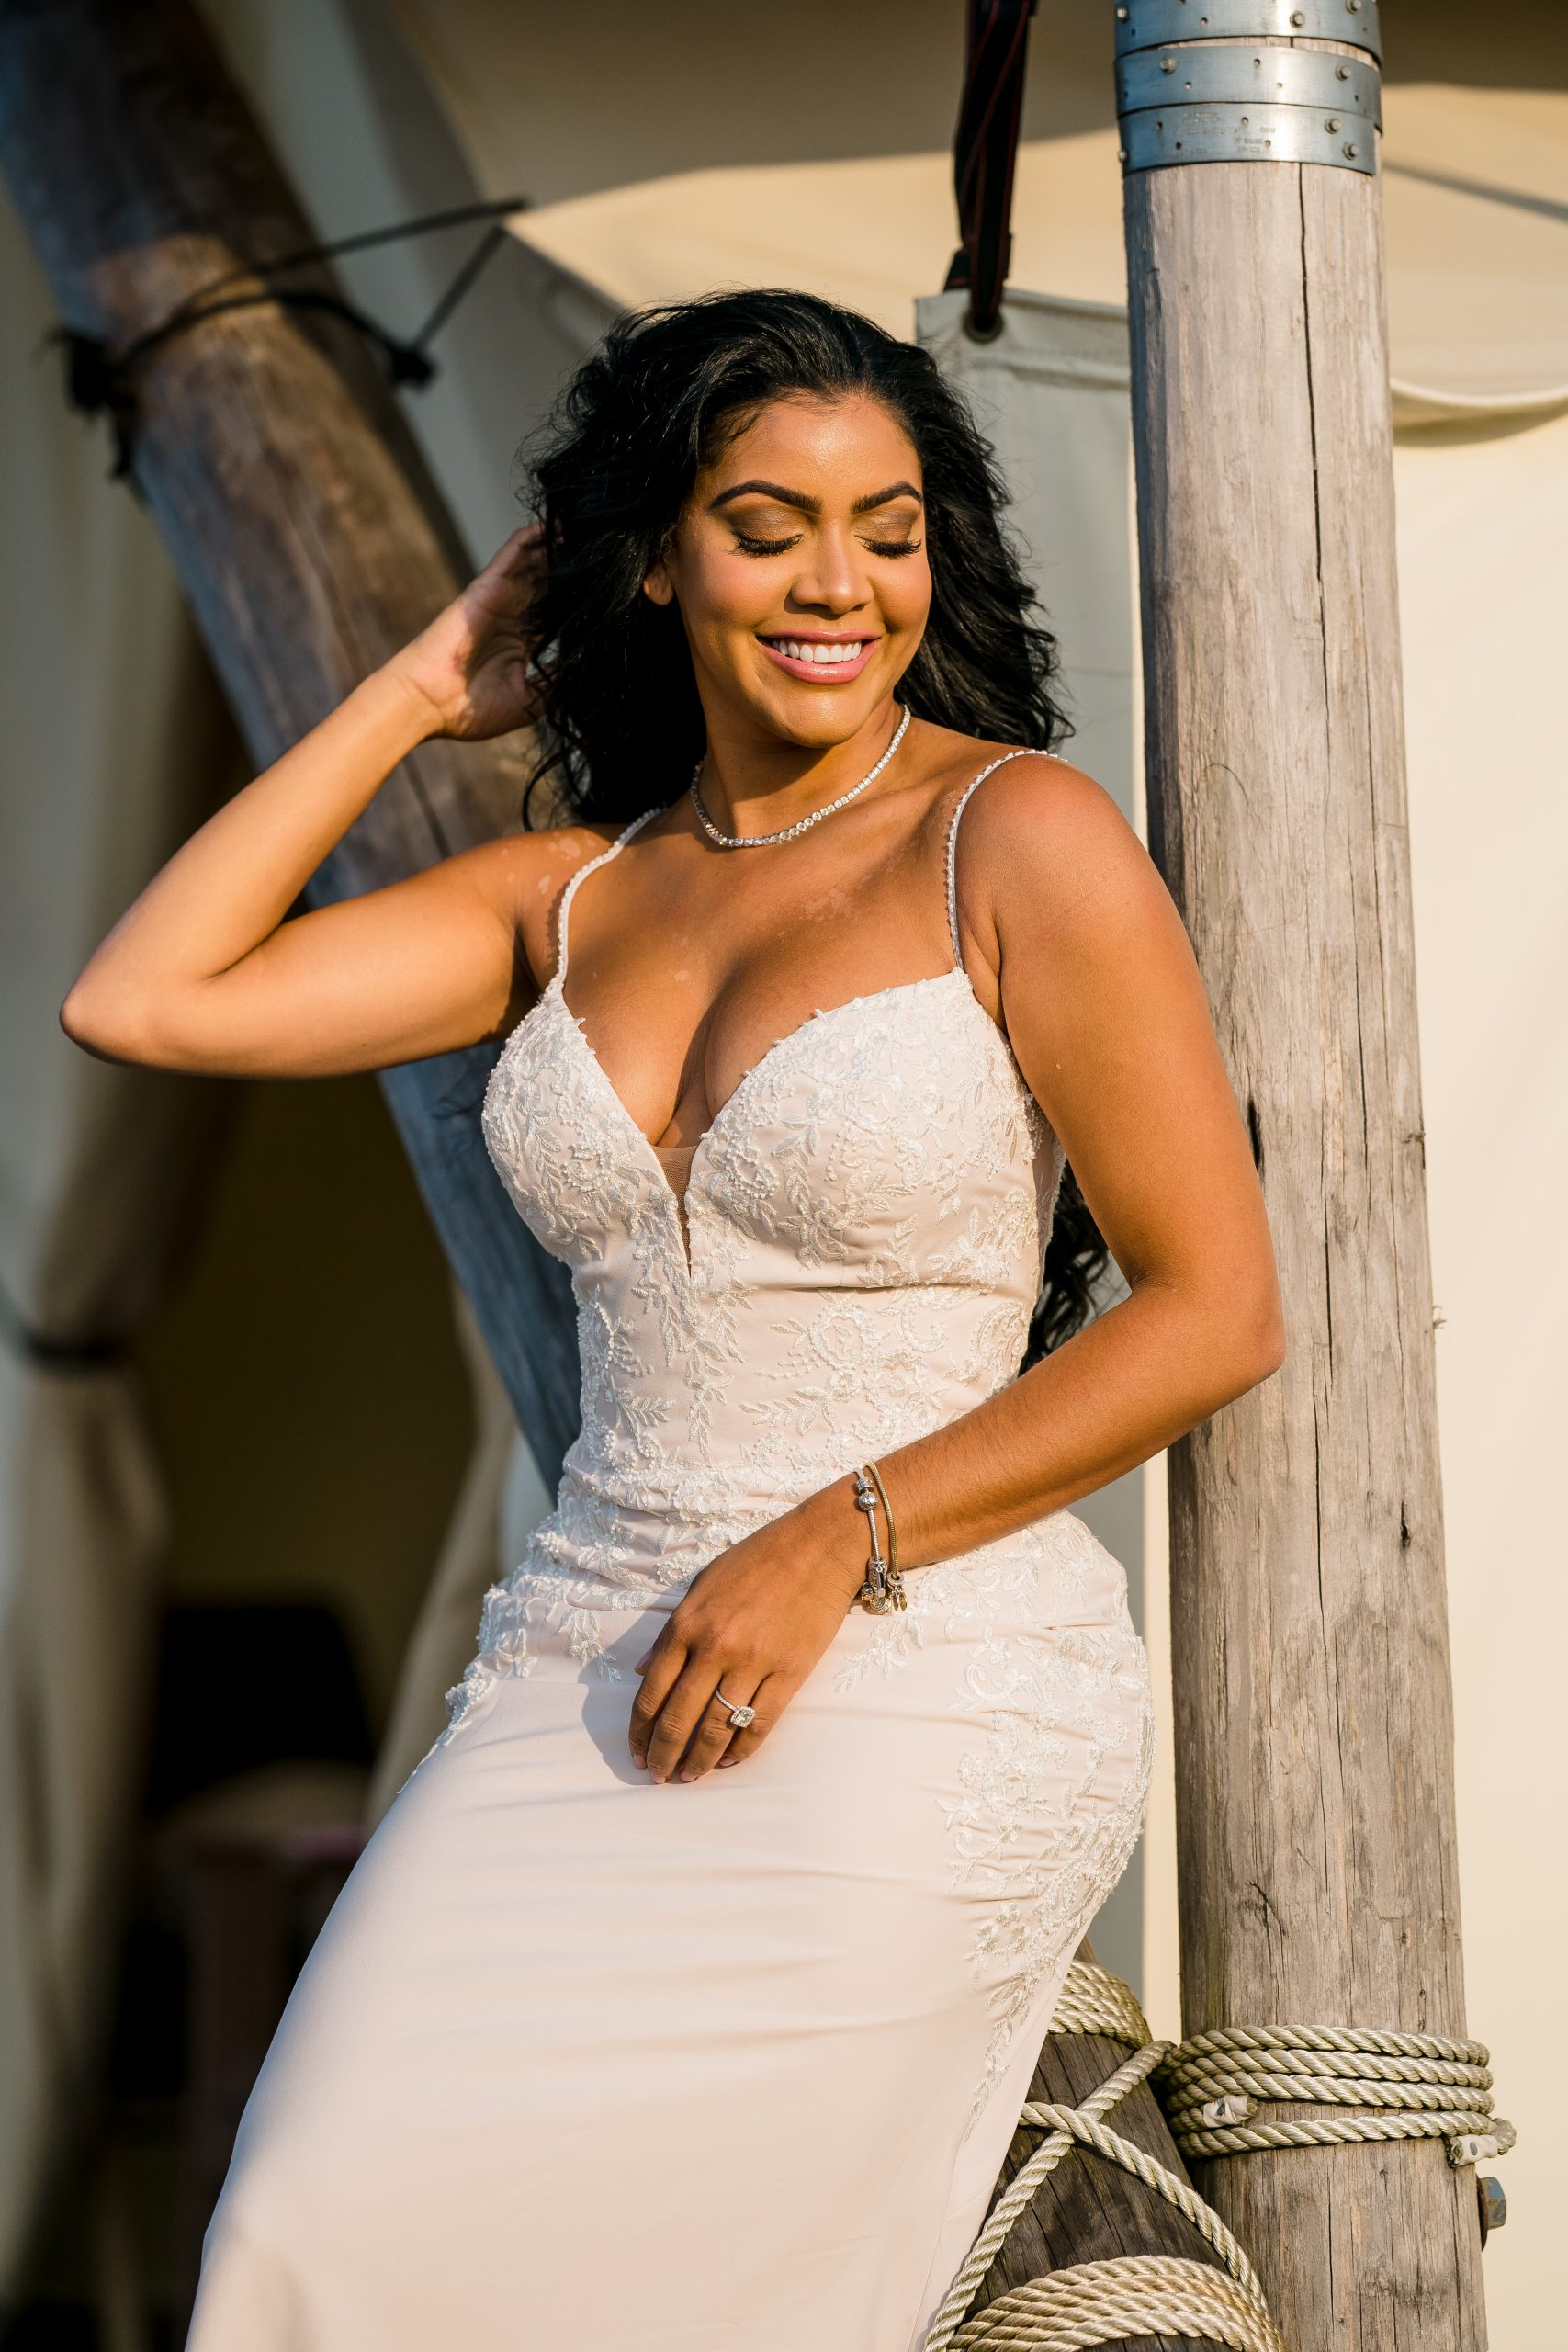 Influencer at Influencer Event Wearing Simple Crepe Wedding Dress Called Aubrey by Rebecca Ingram